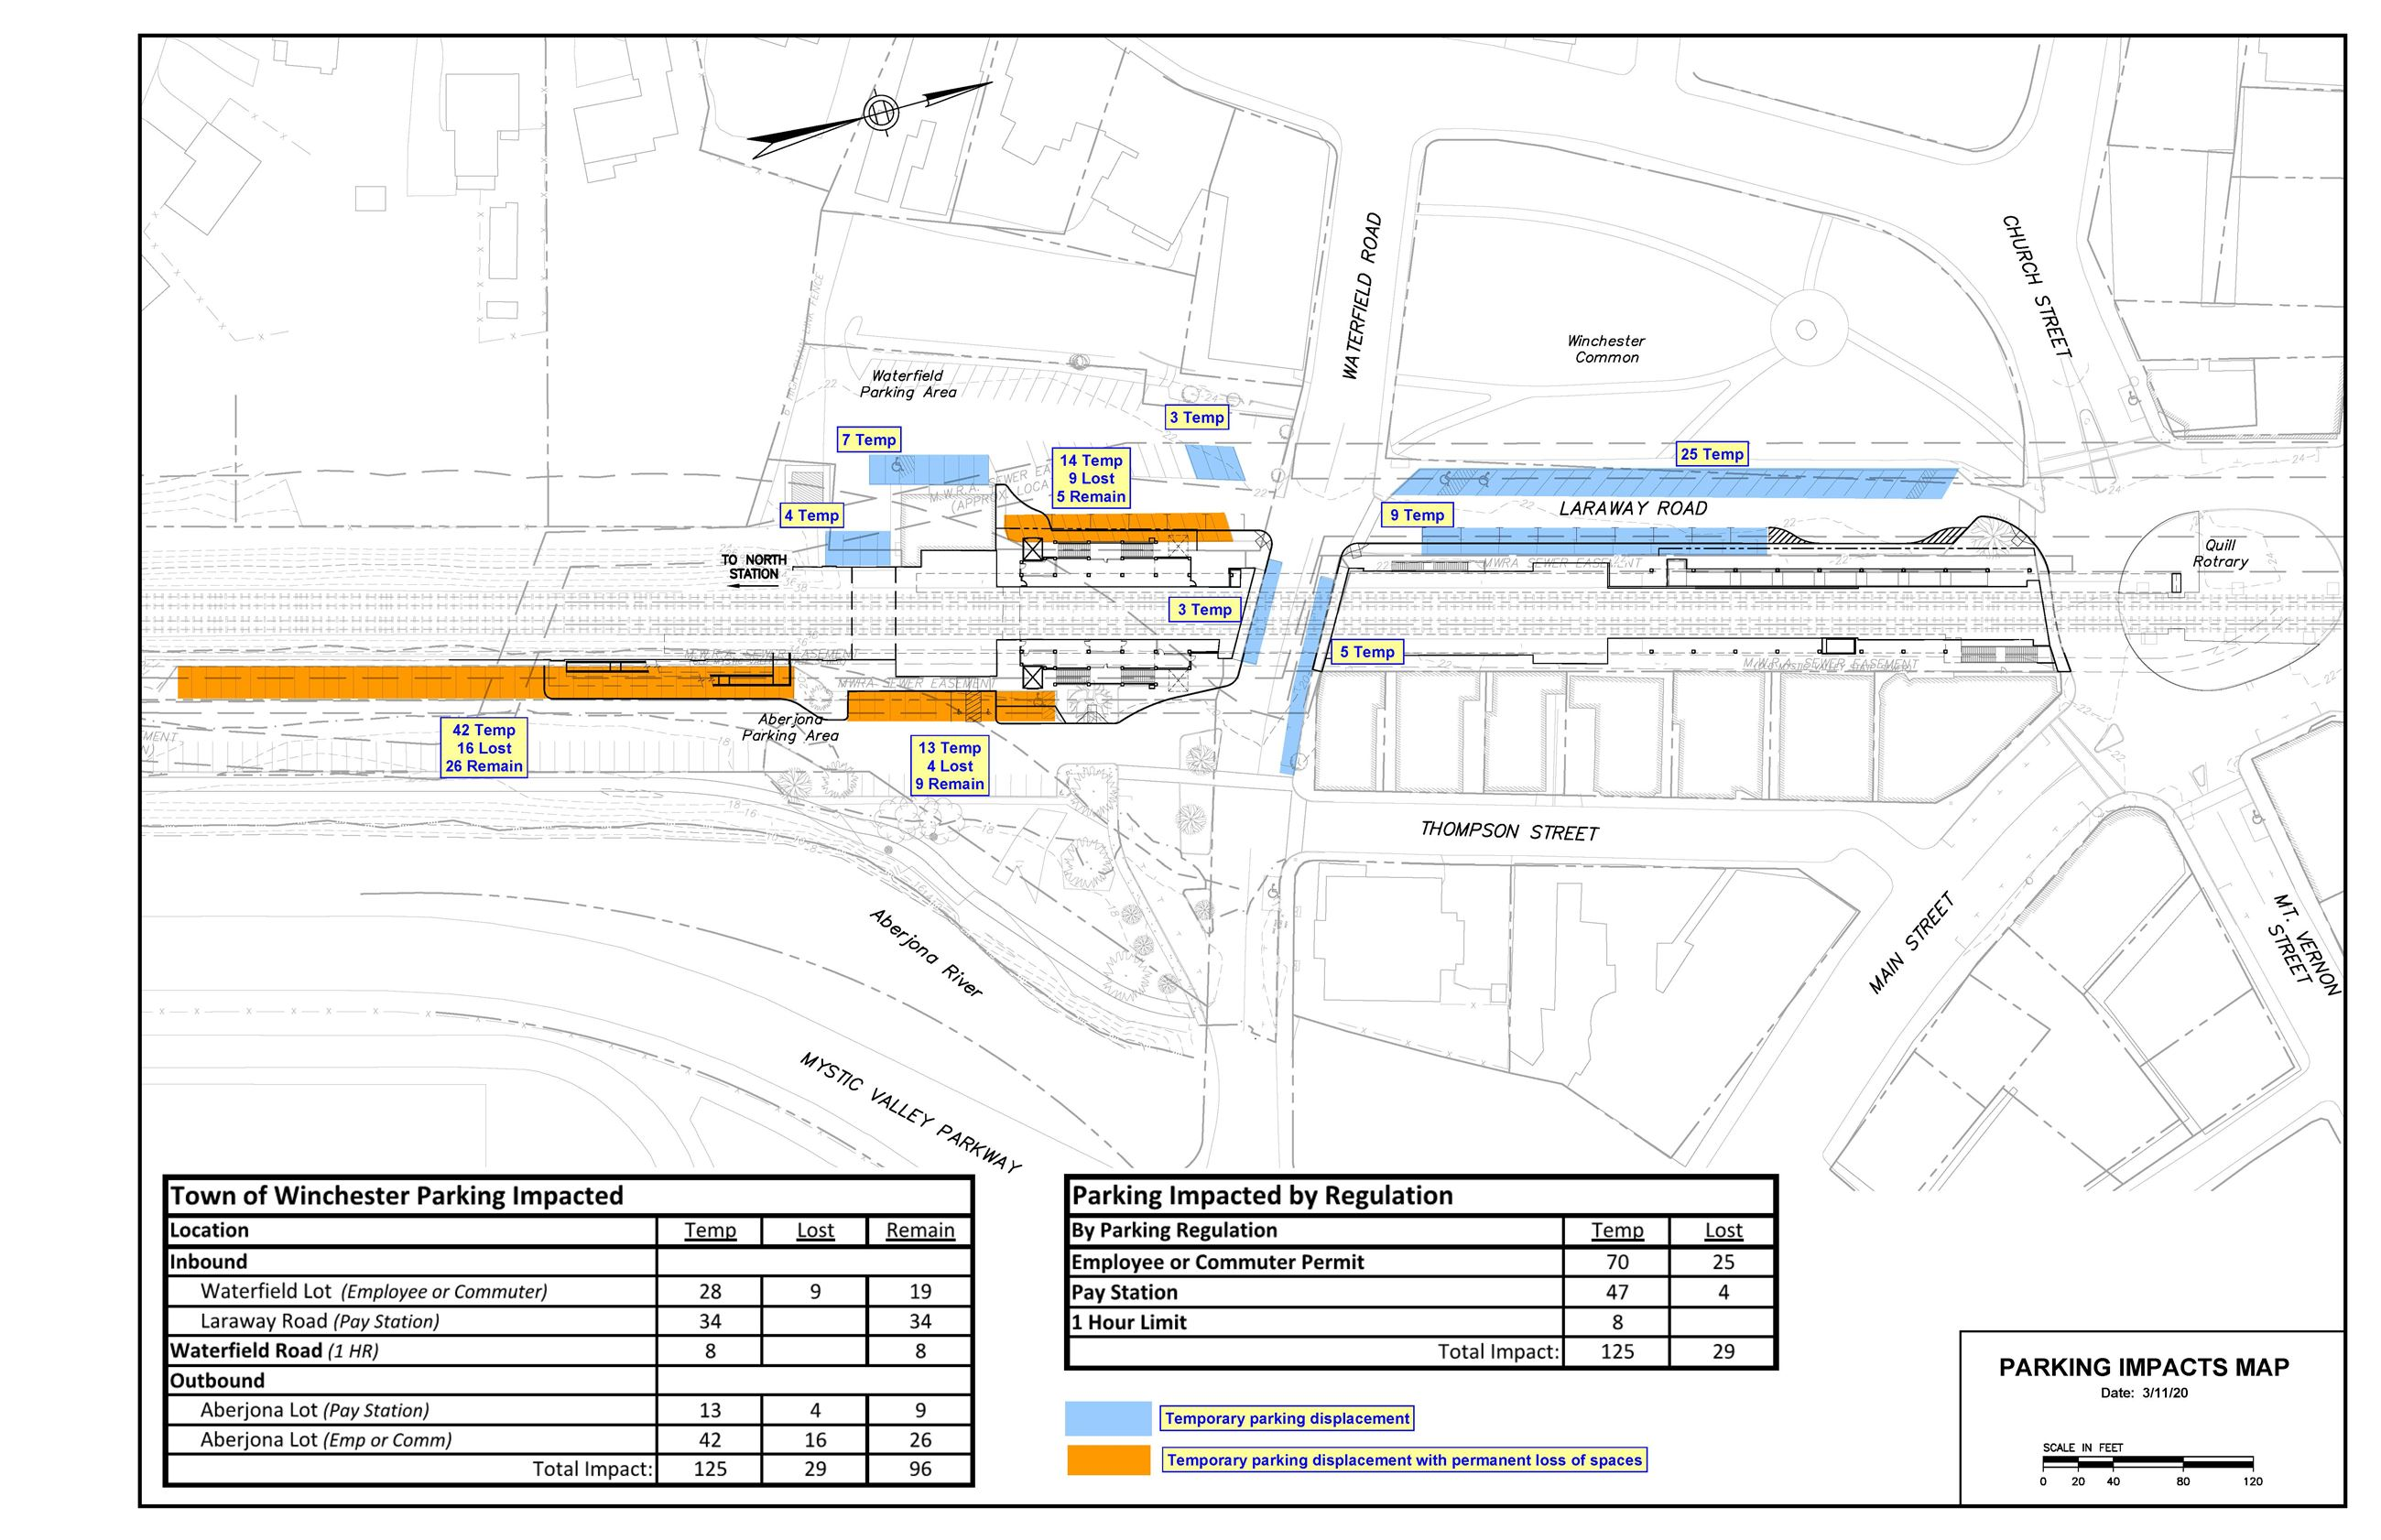 Town of Winchester Parking Impacts_2020-03-11